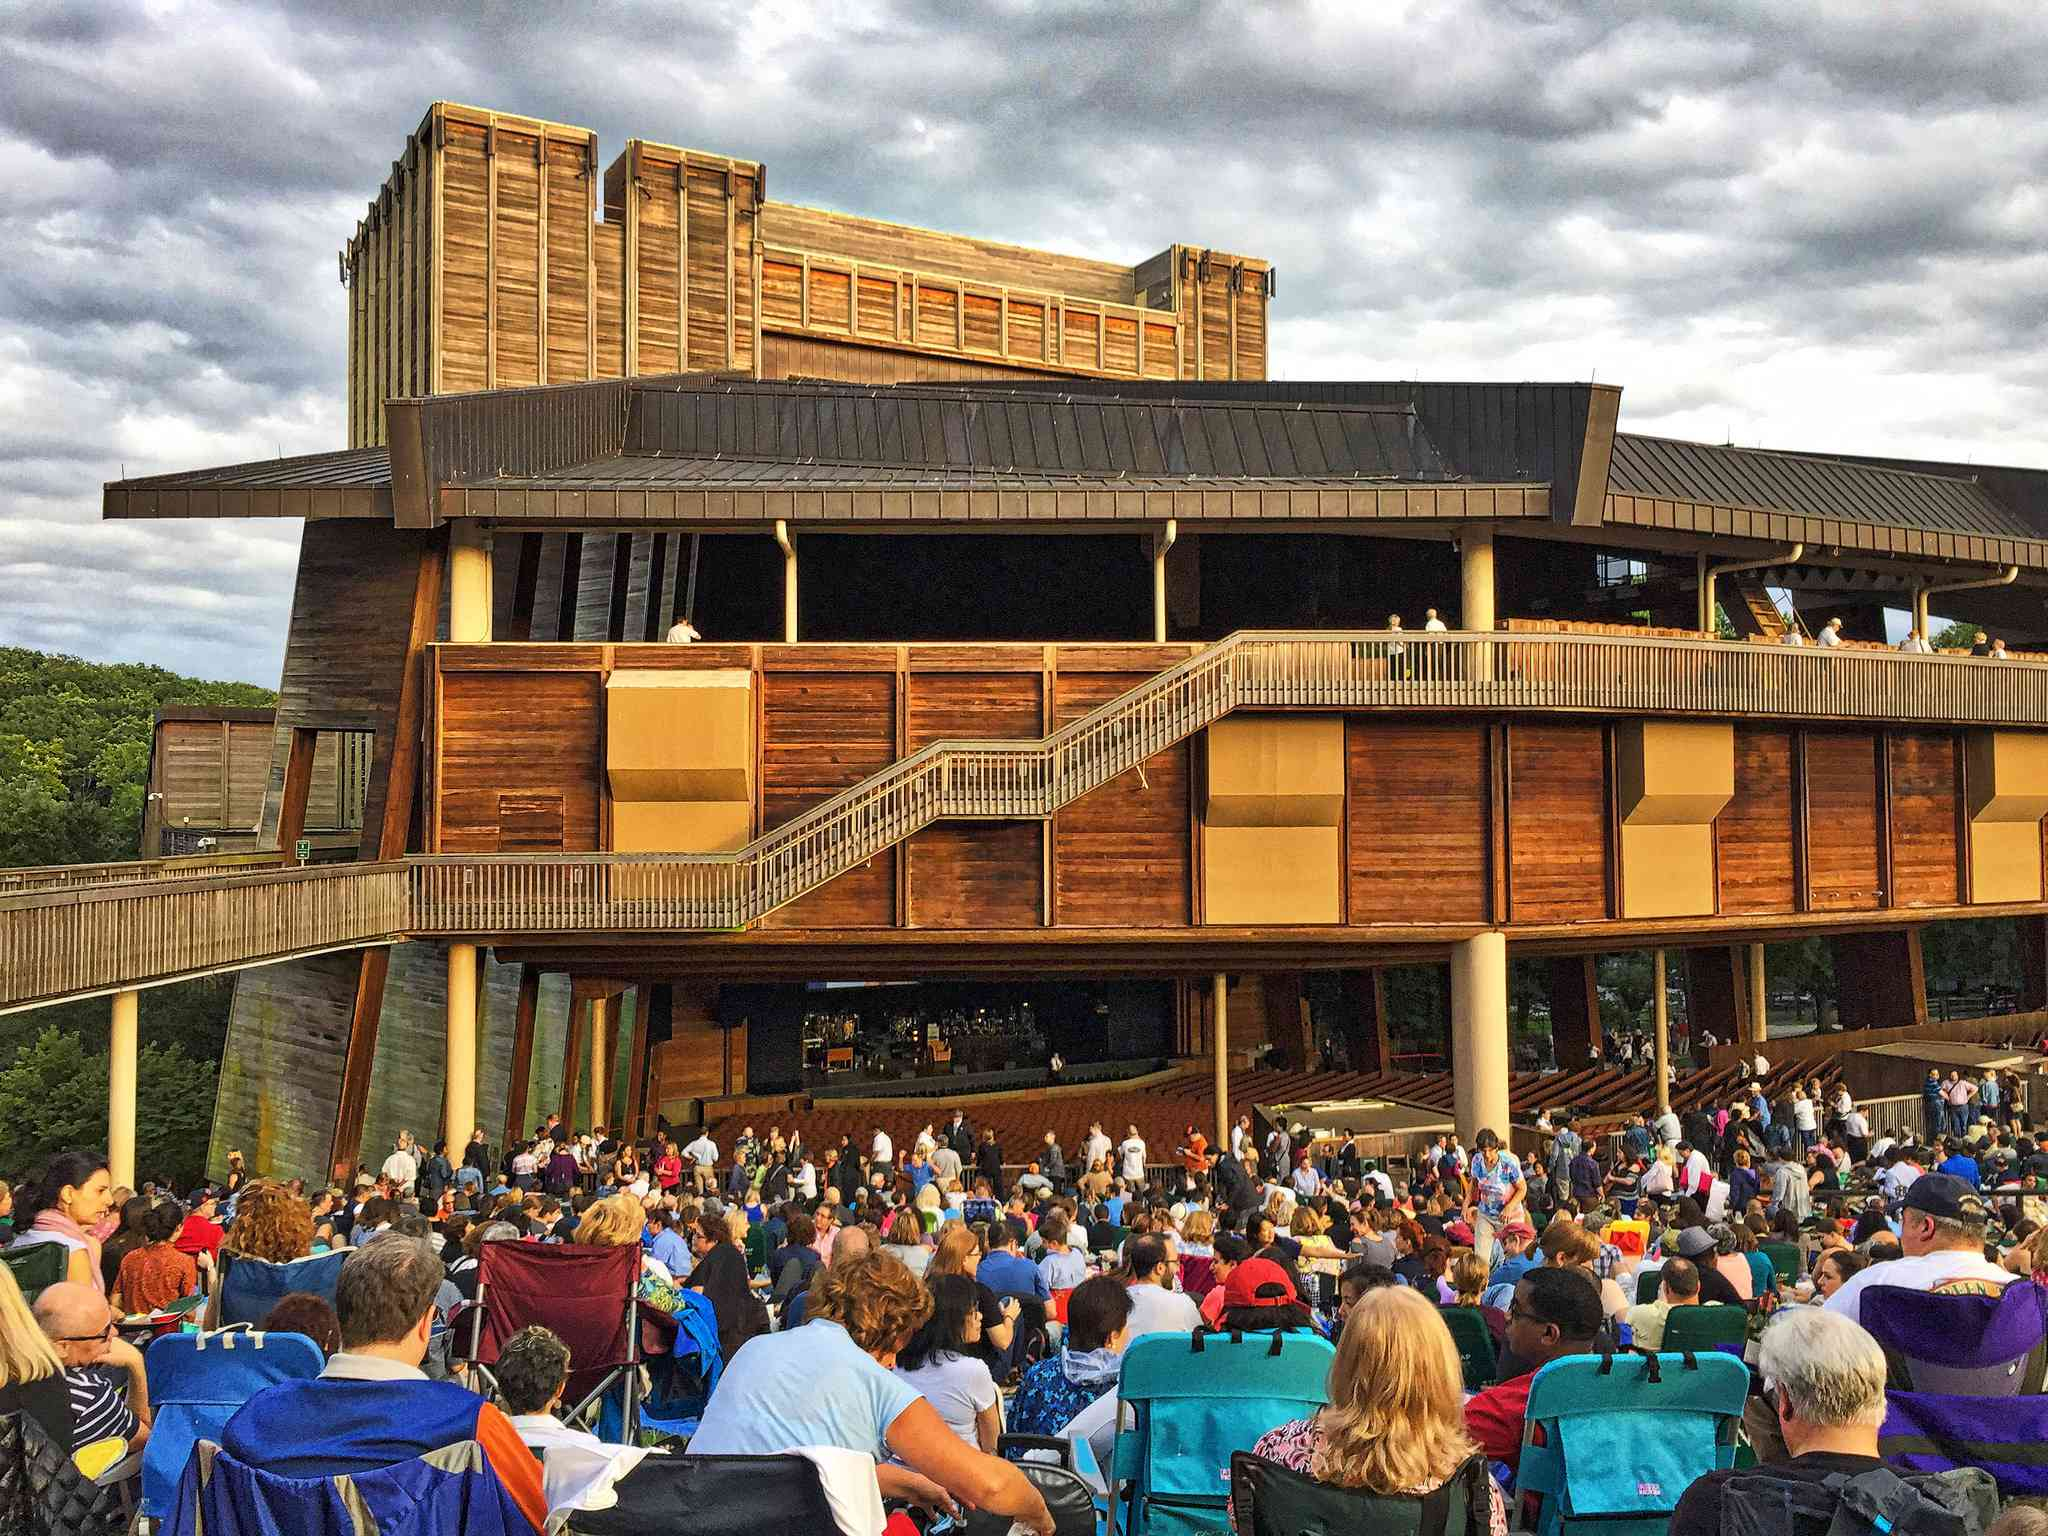 Daytime view of the audience seated in front of the Filene Center, a two story wooden structure and performance venue at Wolf Trap National Park